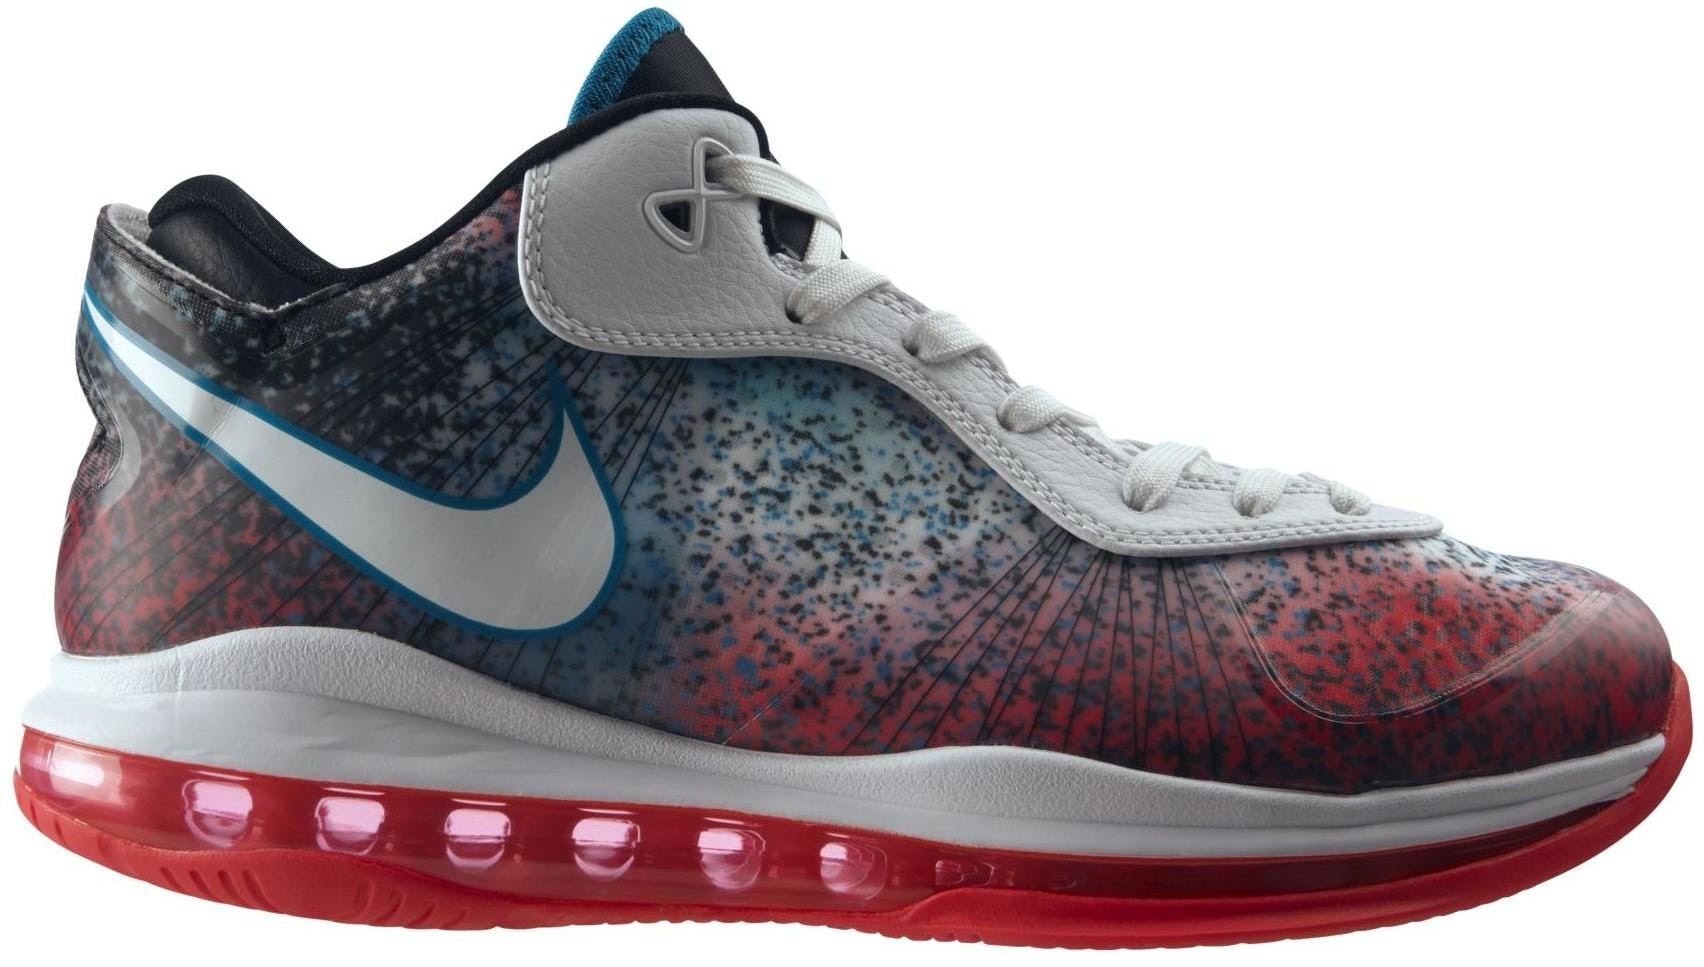 LeBron 8 V/2 Low Miami Nights